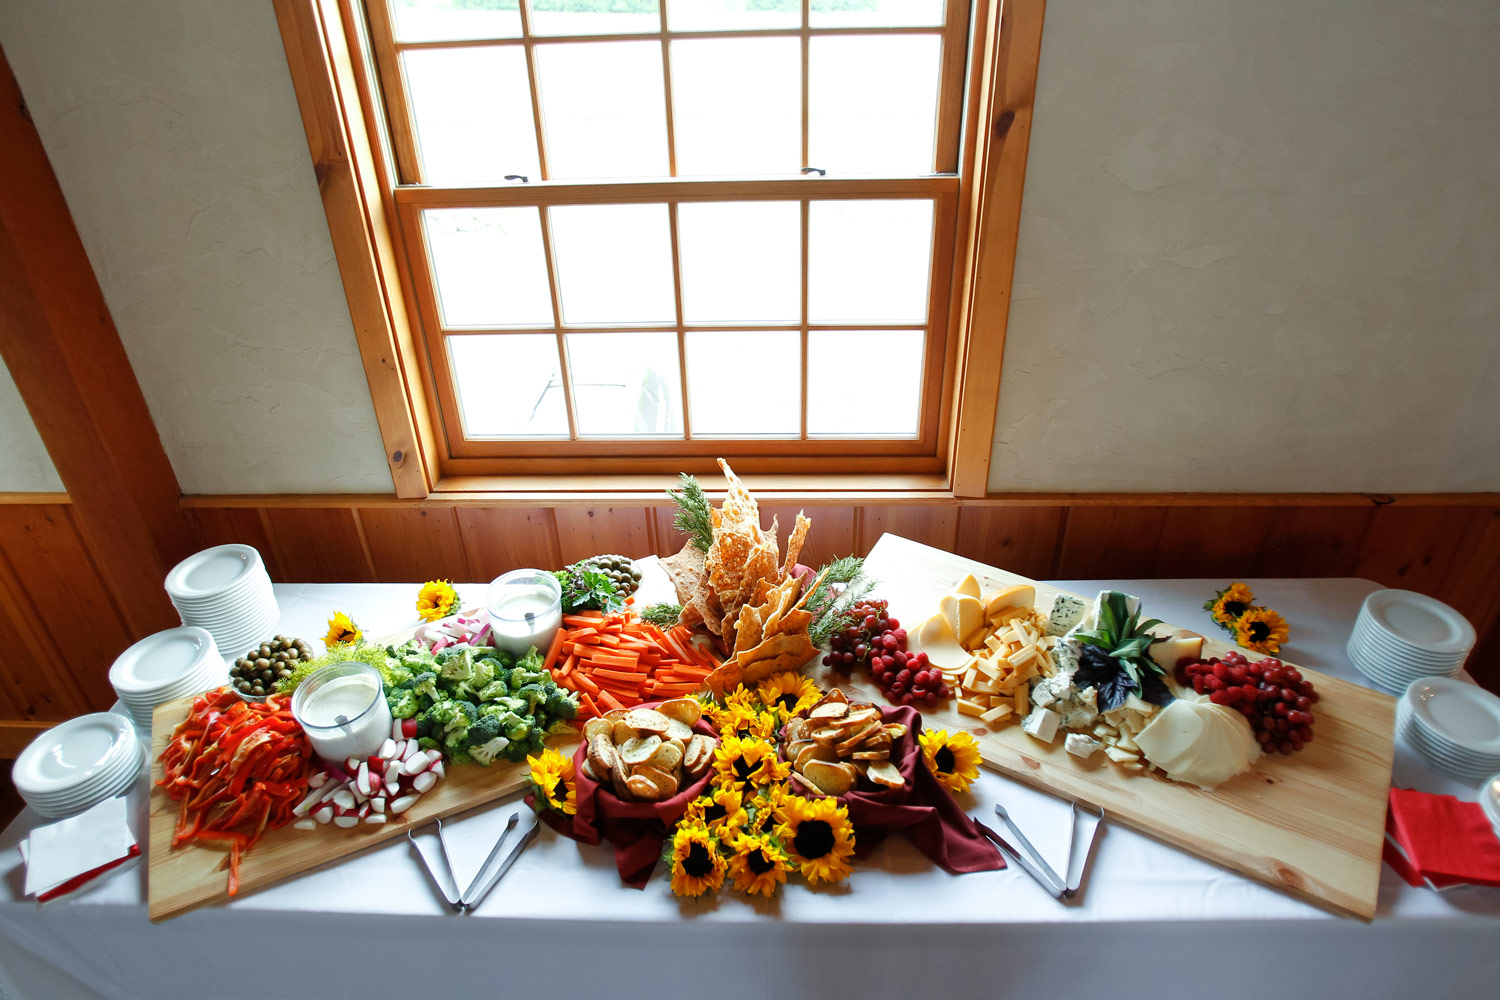 event-photographer-madison-wi-dane-county-gala-fundraiser-ruthie-hauge-photography-farm-to-table 29.jpg